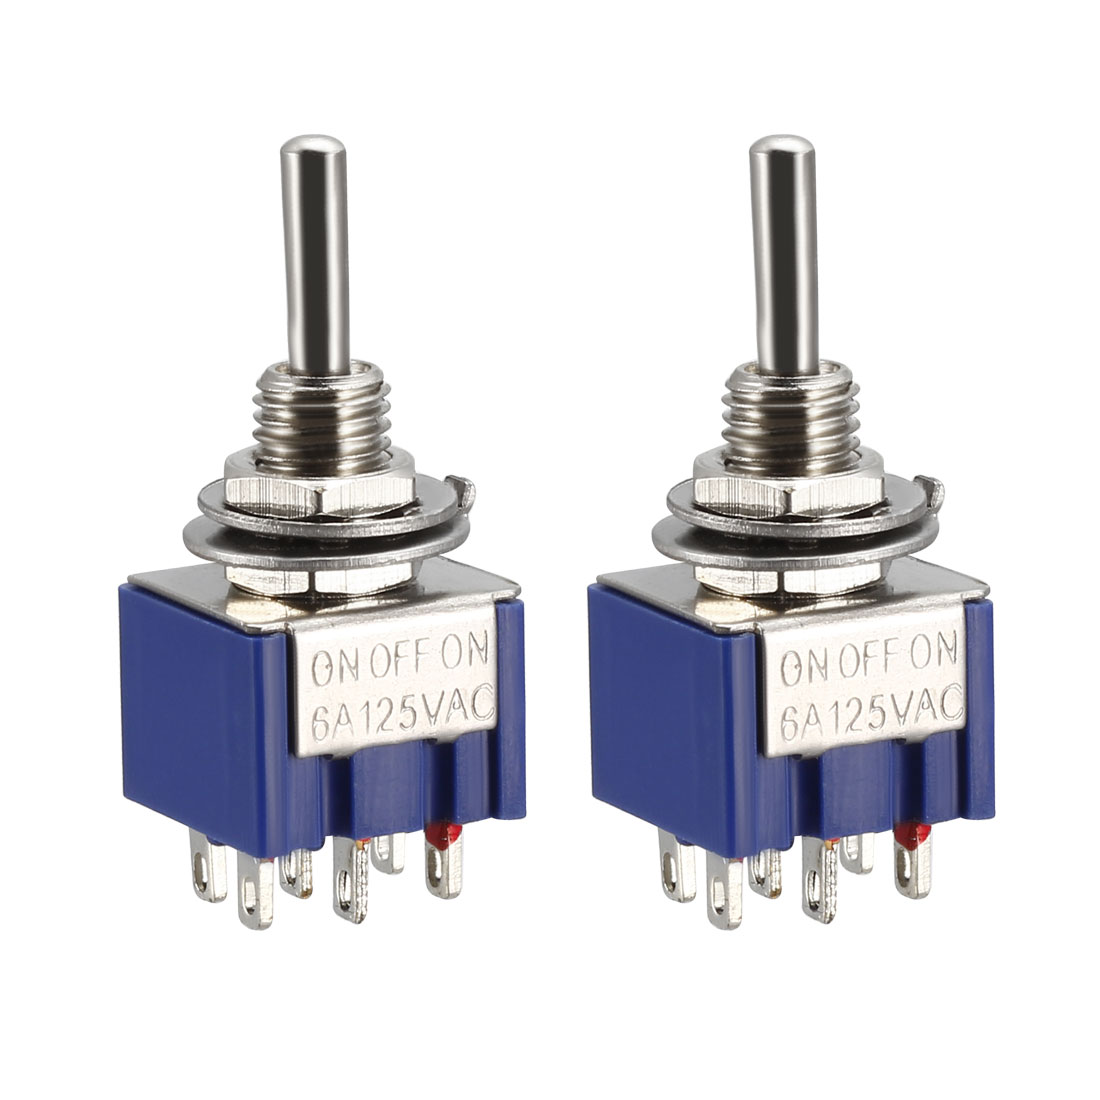 Guitar Latching Toggle Switch DPDT 3 Position 6P ON OFF ON Boat Switch Bule 2pcs